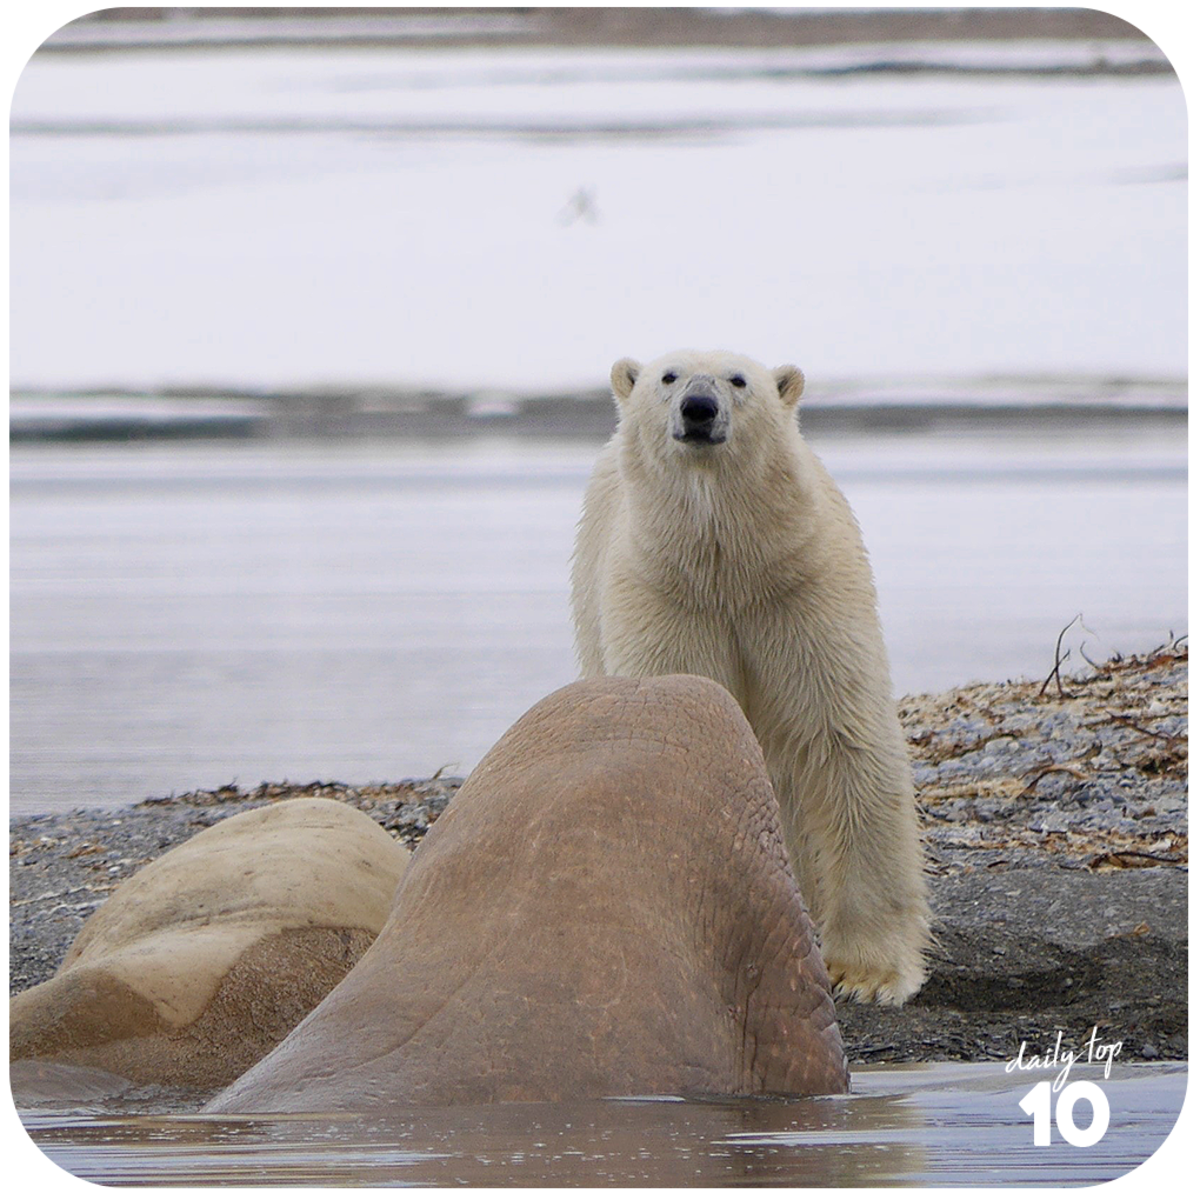 The polar bears are struggling to cope with the situation and it is just a matter of time before they totally won't have anywhere to go.